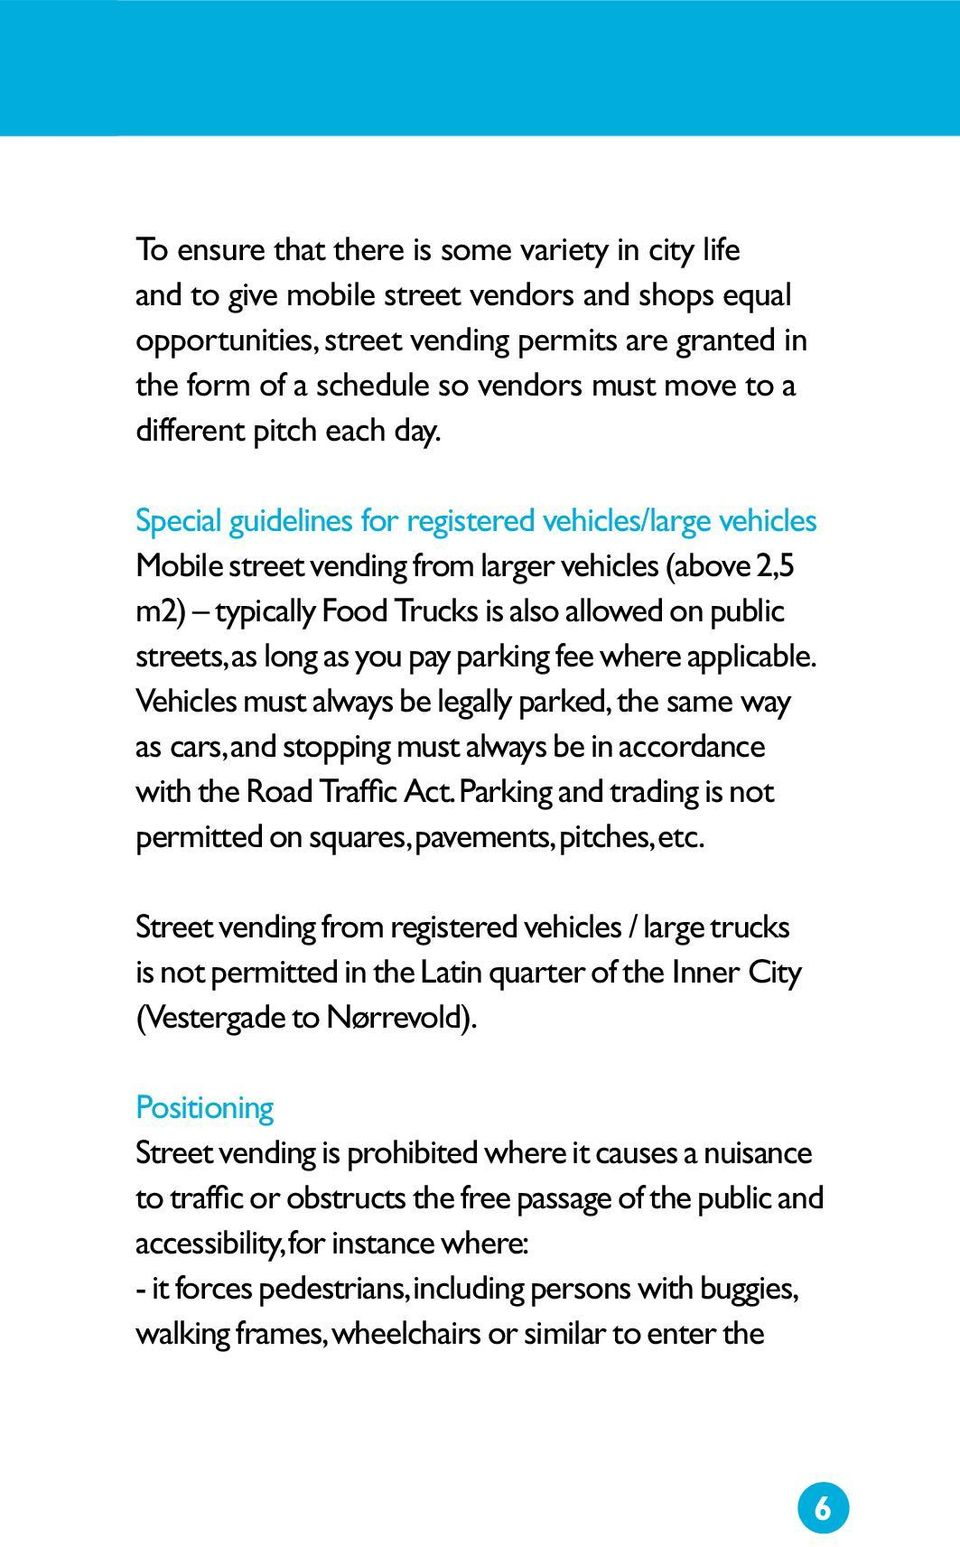 Special guidelines for registered vehicles/large vehicles Mobile street vending from larger vehicles (above 2,5 m2) typically Food Trucks is also allowed on public streets, as long as you pay parking